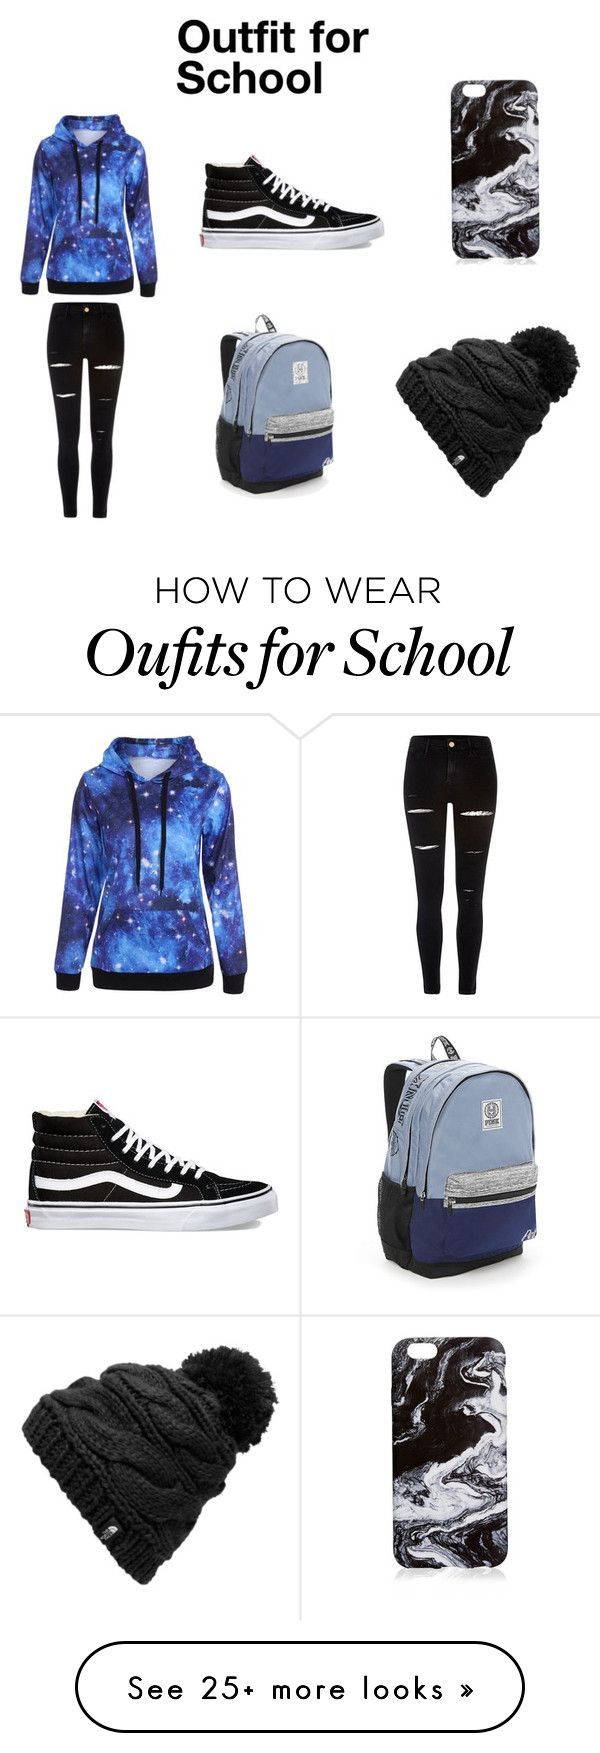 """""""Outfit for School"""" by ava-josephine on Polyvore featuring River Island, Vans, Victoria's Secret and The North Face"""